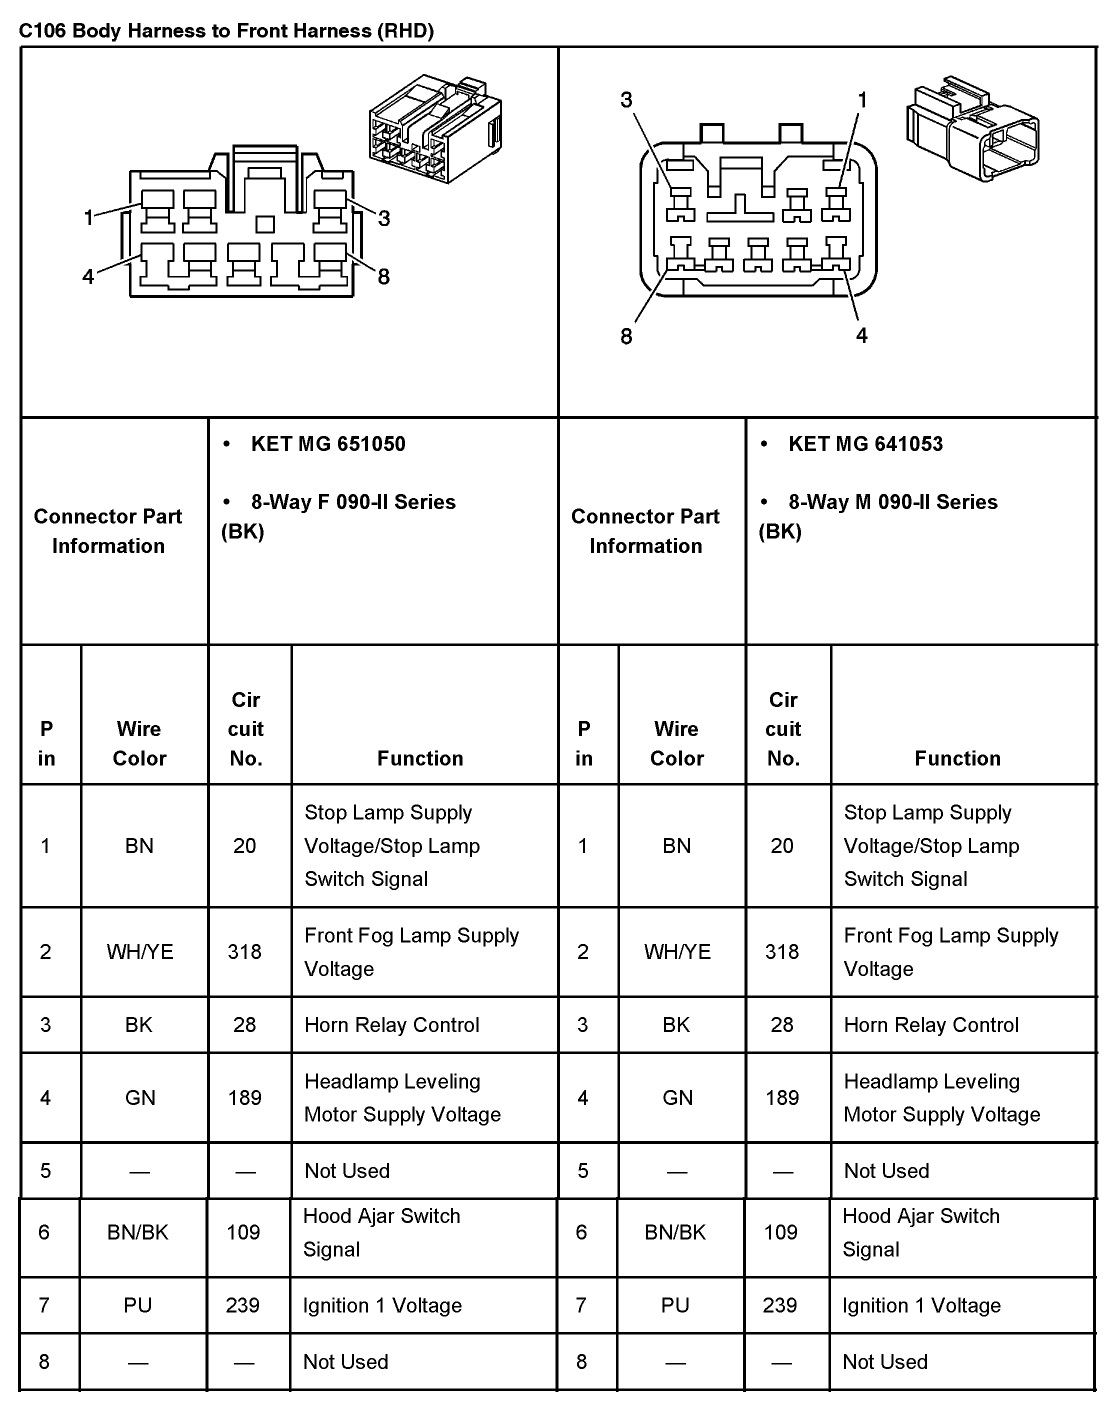 2005 Aveo Master Connector List And Diagrams Volvo 850 Radio Wiring Diagram